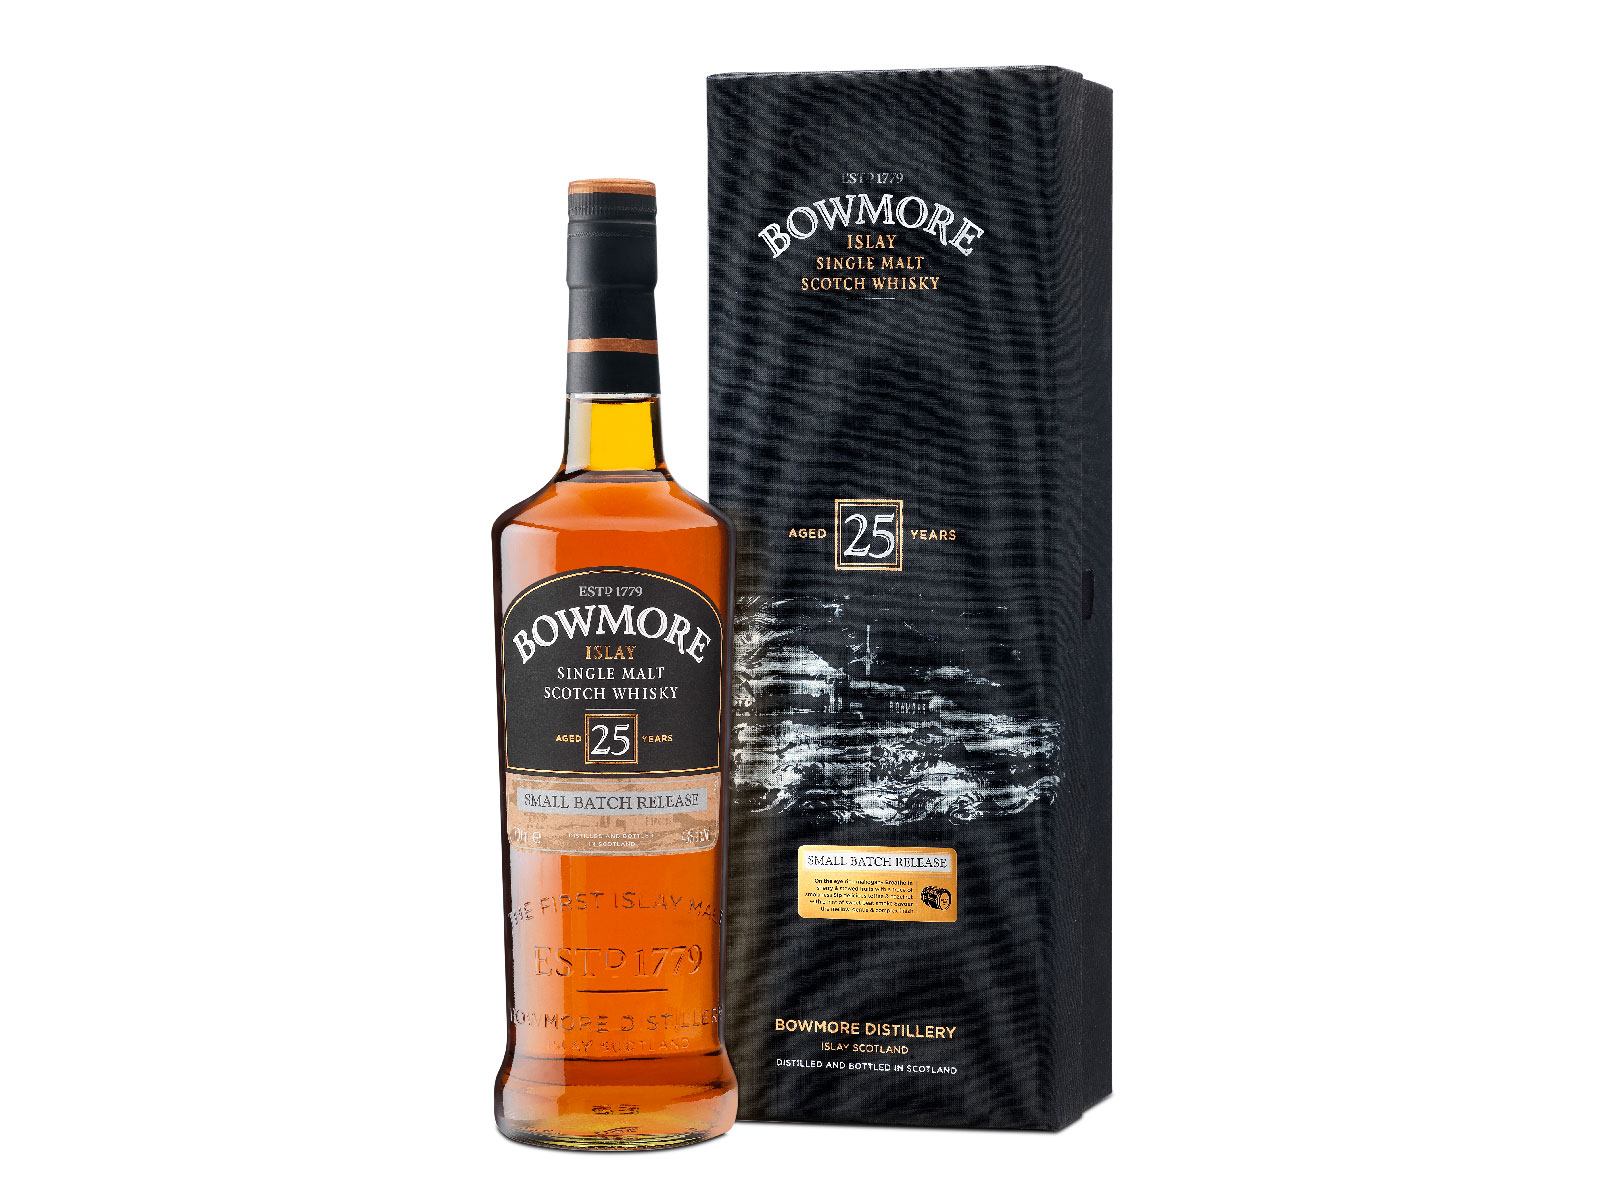 Bowmore 25 Year Old Whisky